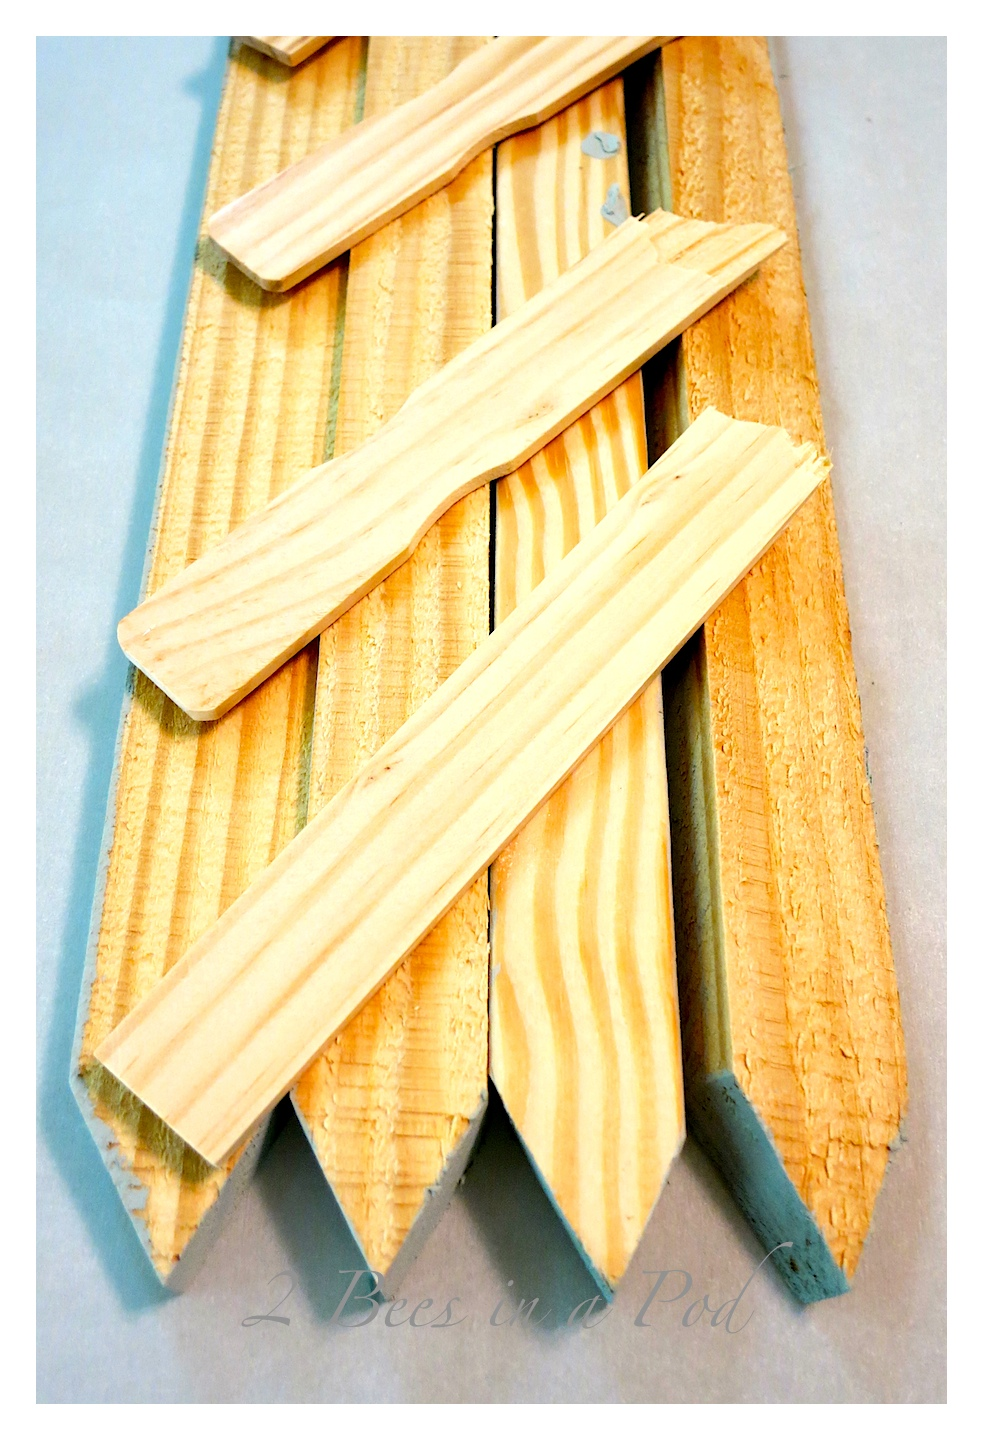 """DIY Rustic Vintage """"Lake"""" Sign - so easy to make using grade stake pickets from the hardware store. Paint and wax for an antiqued finished look."""